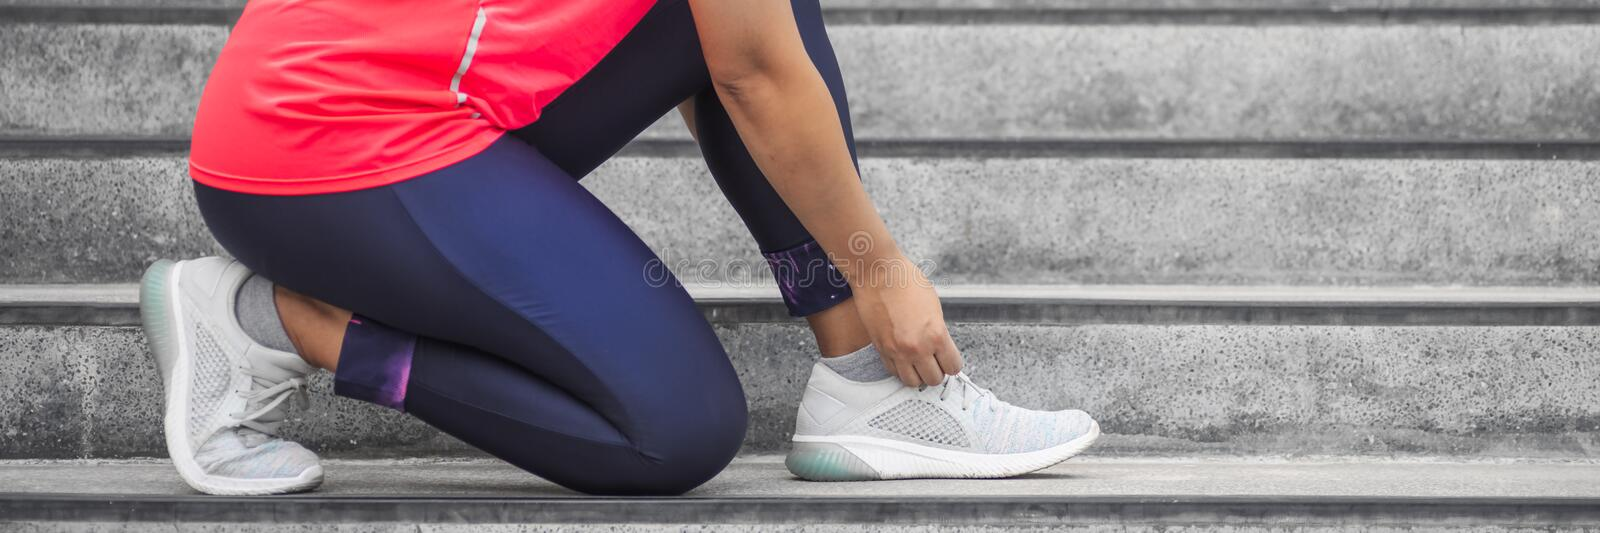 Woman tying shoelace on running shoes before practice. Runner getting ready for training. Sport active lifestyle concept.  Outdoor stock photo